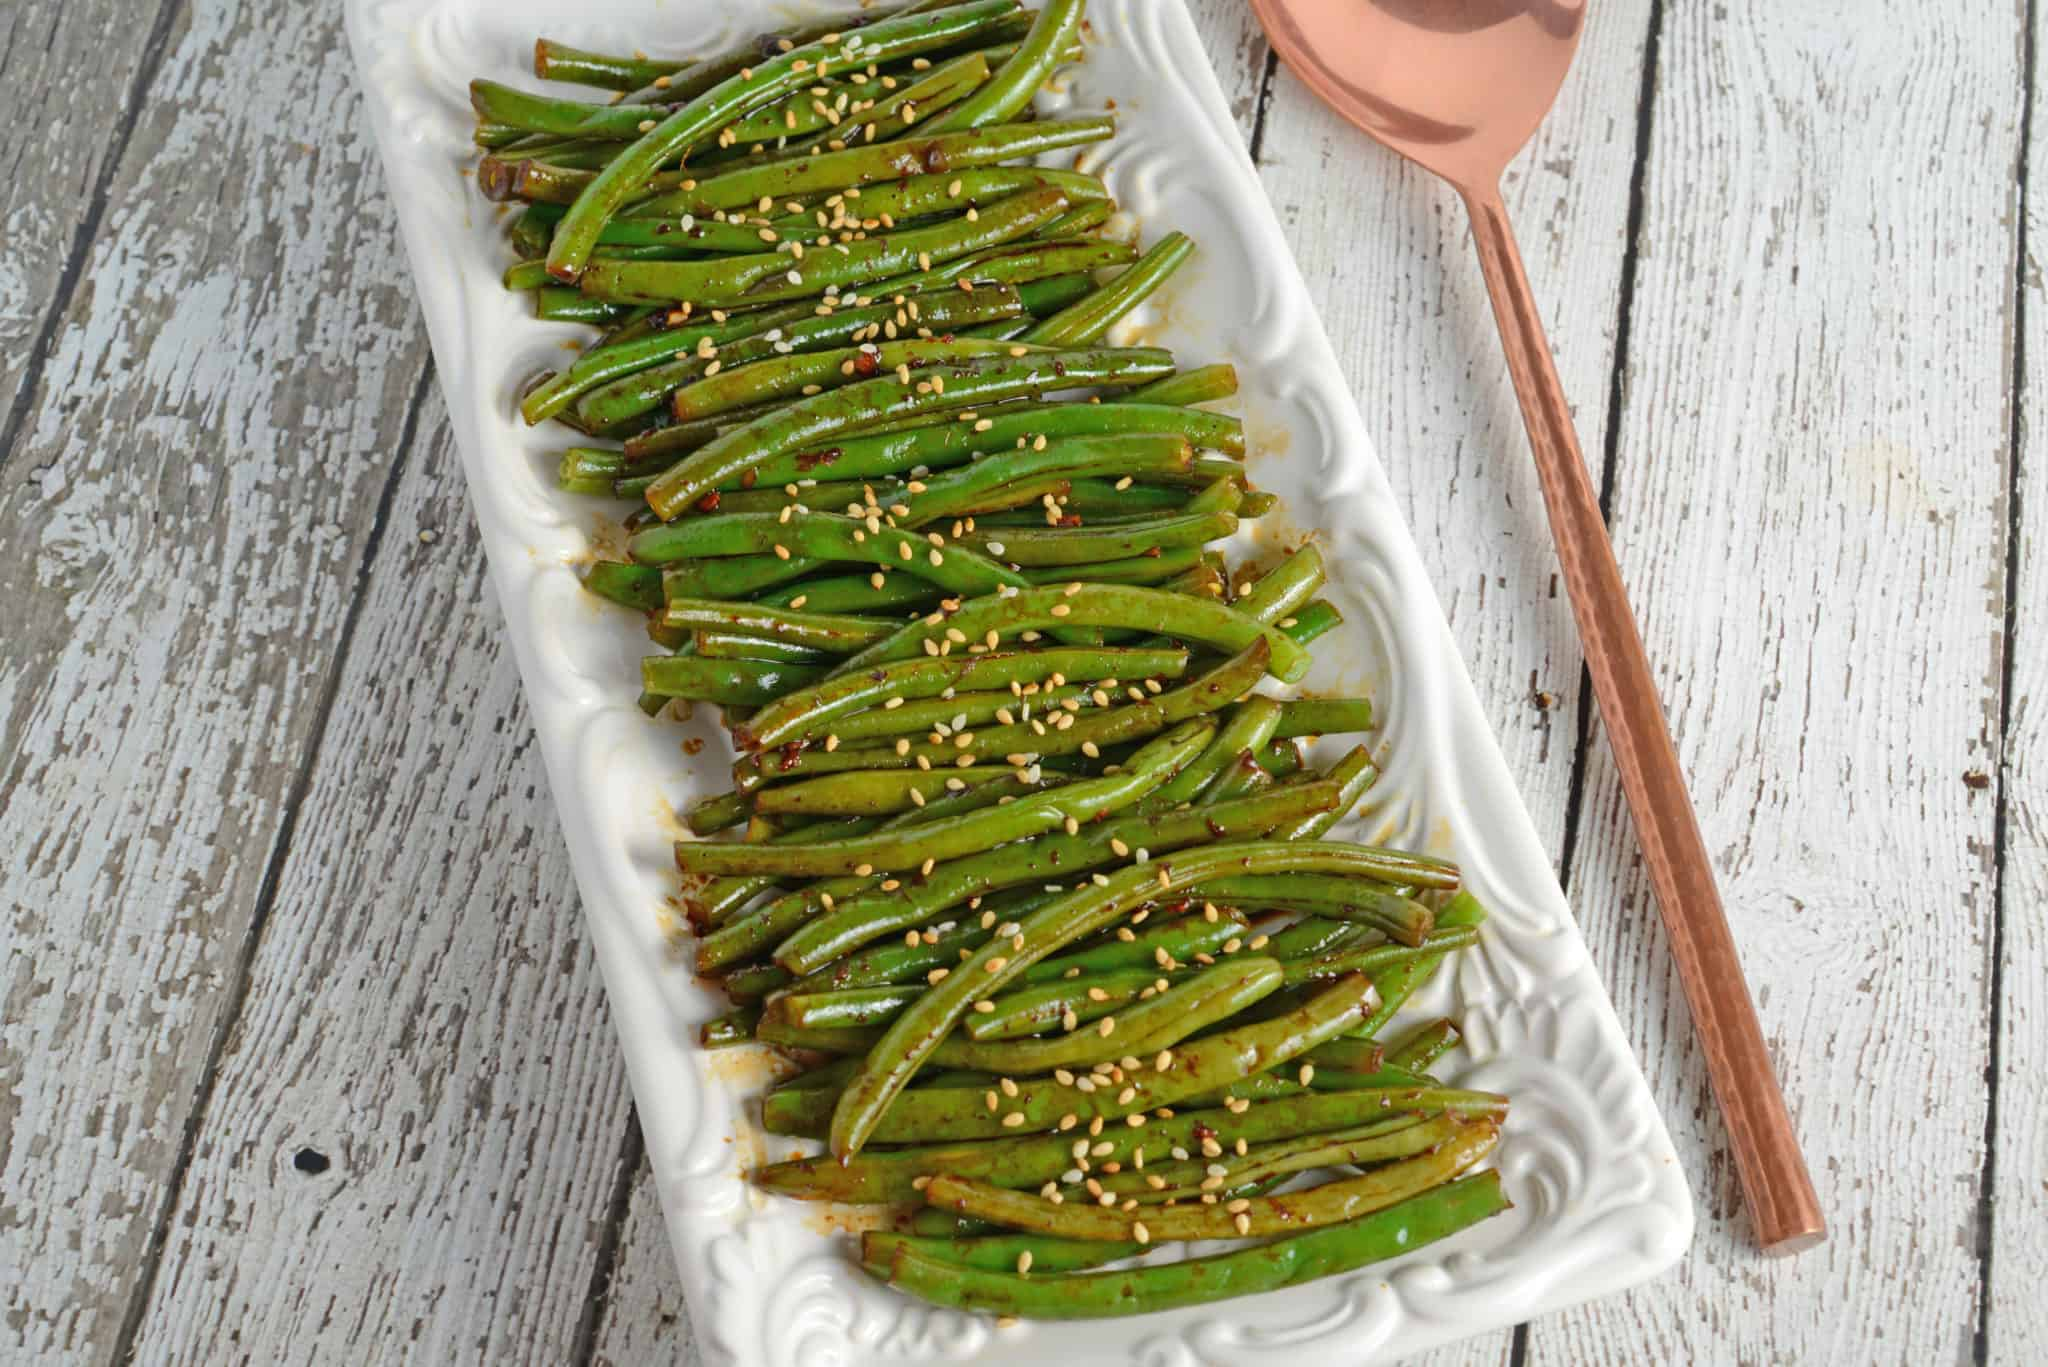 Copycat P.F. Chang's Spicy Green Beans Recipe - Easy, gluten free, garlicky and spicy side dish made with fresh green beans in just minutes. Perfect for any Asian meal. www.savoryexperiments.com